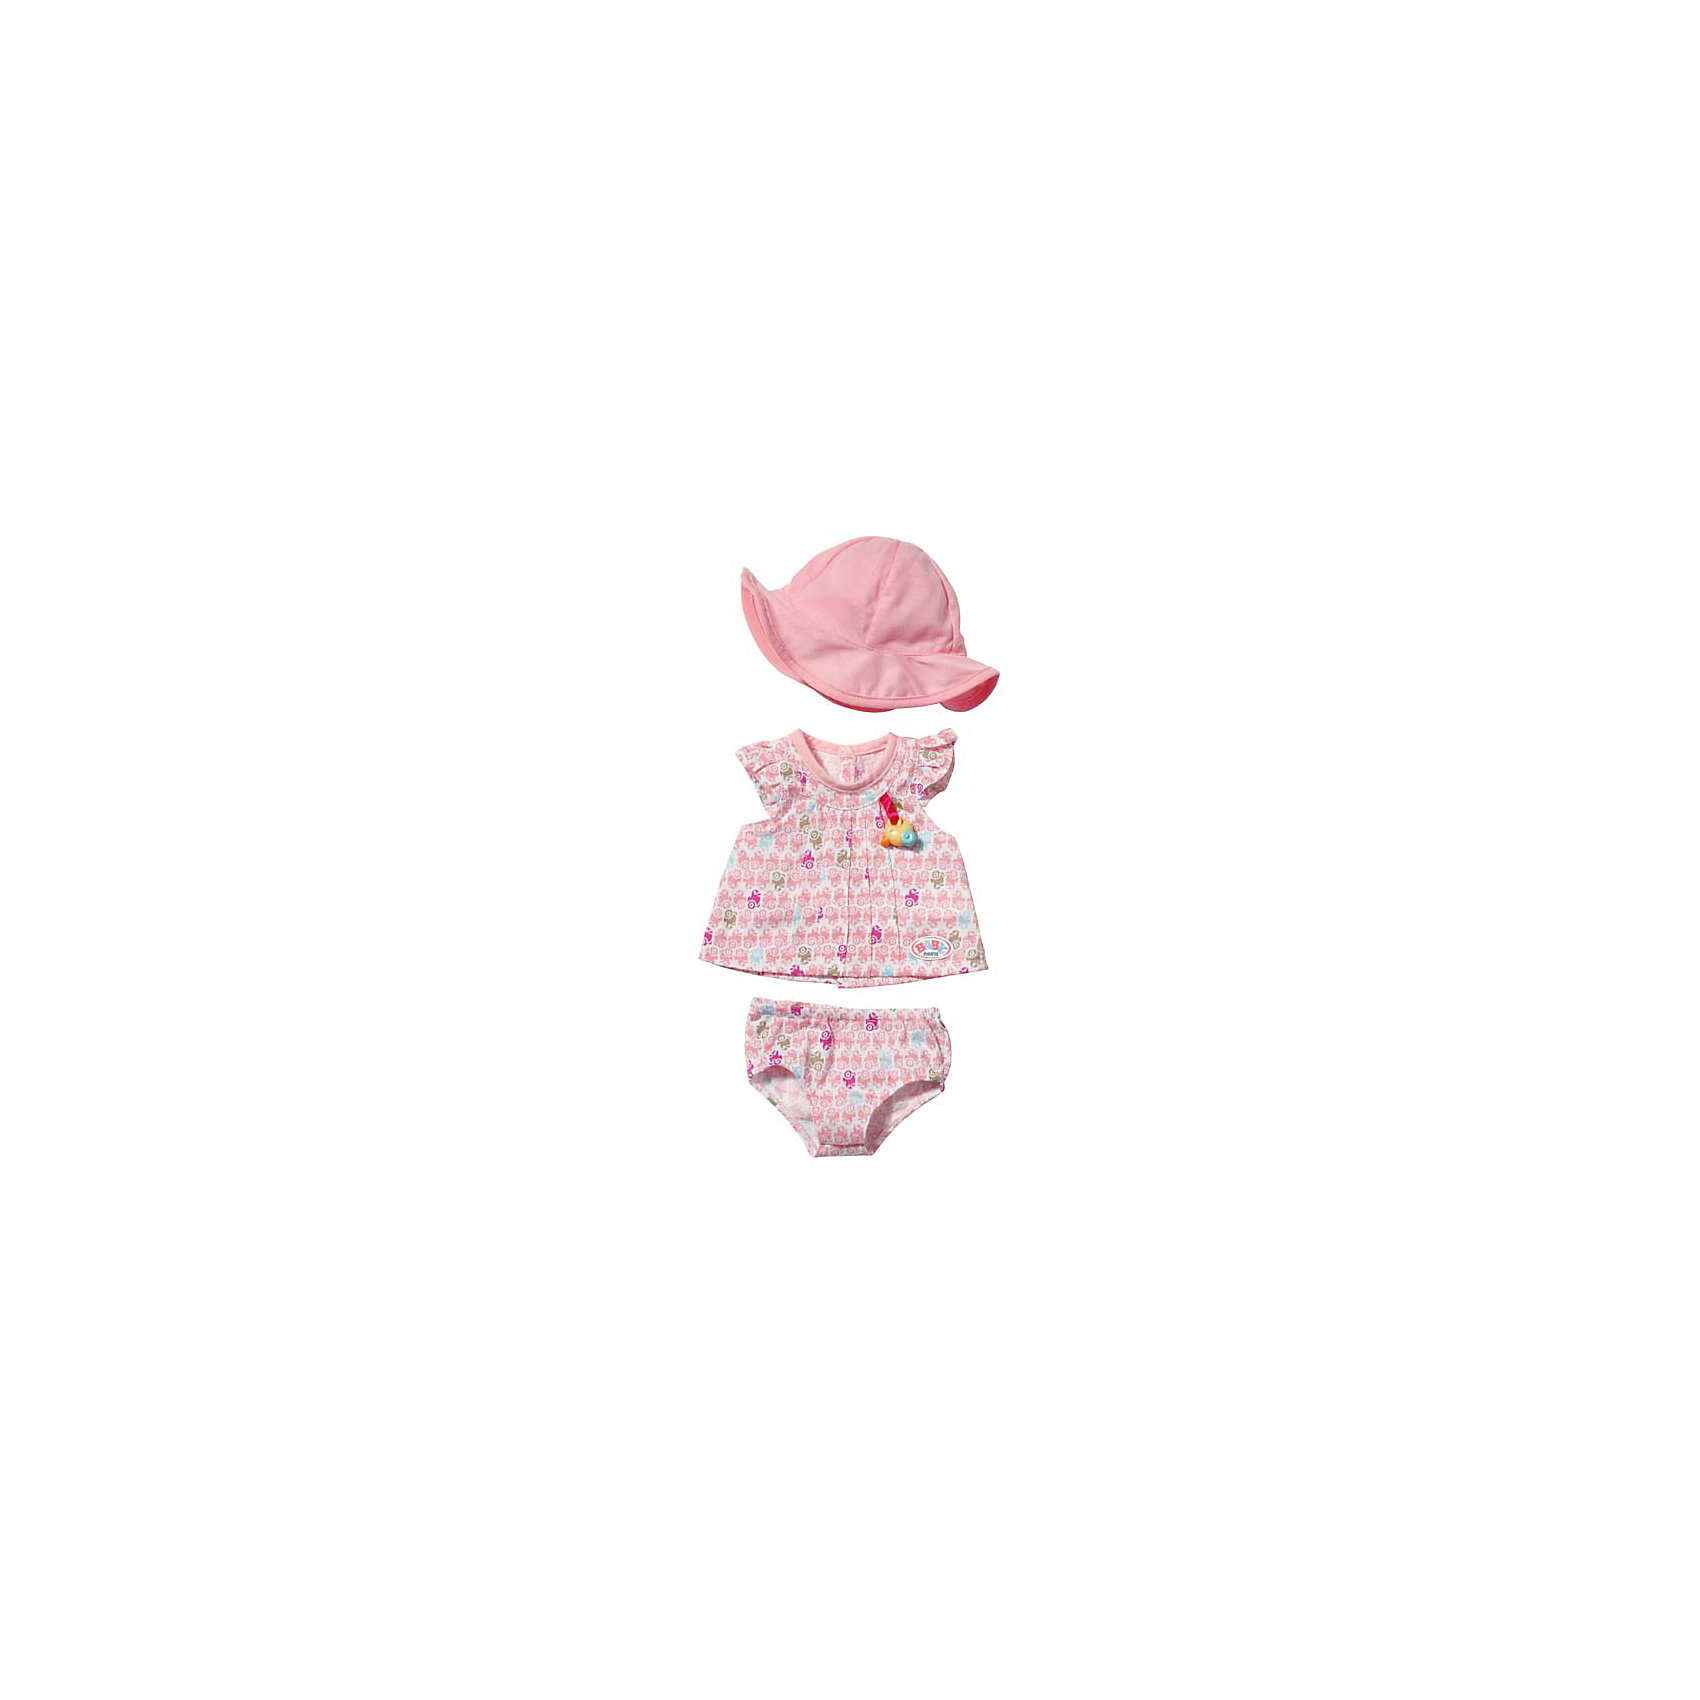 Zapf Creation Летняя одежда для куклы Цветное платье- розовая панама, BABY born free shipping gm8901 45m s 88mph lcd digital hand held wind speed gauge meter measure anemometer thermometer